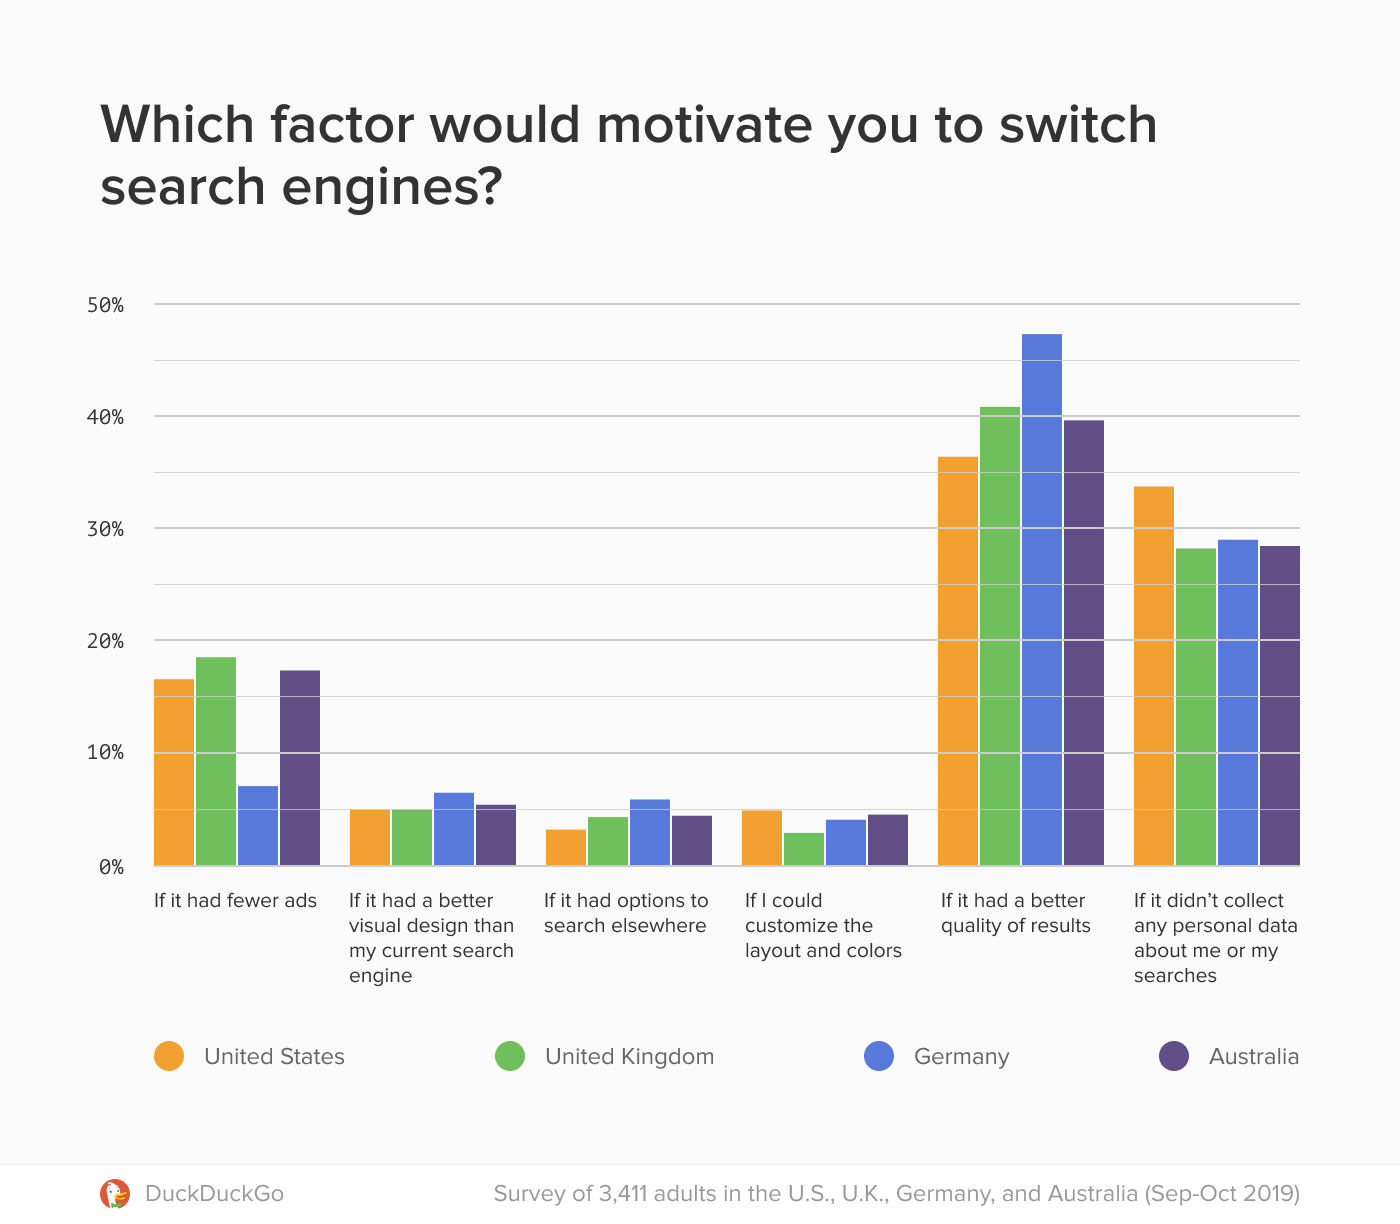 Chart showing which factors motivate users to change search engines.